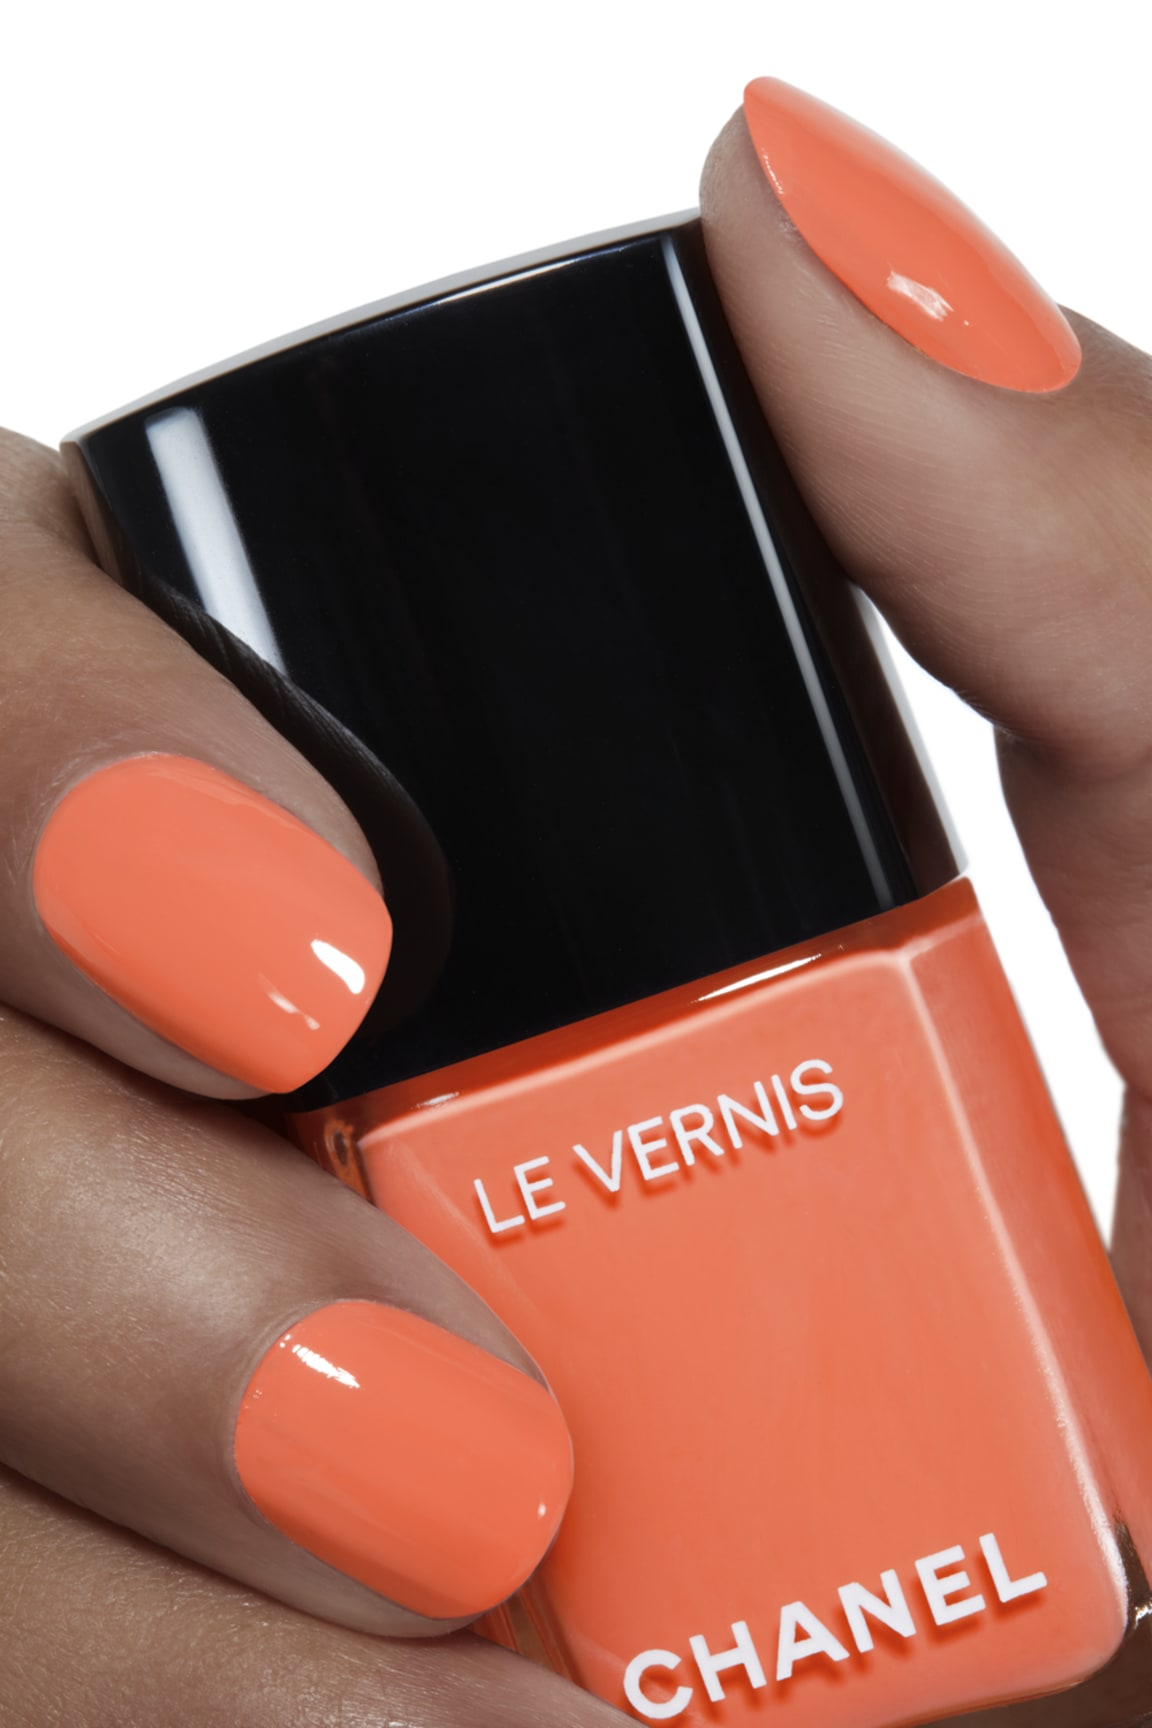 Application makeup visual 1 - LE VERNIS 745 - CRUISE